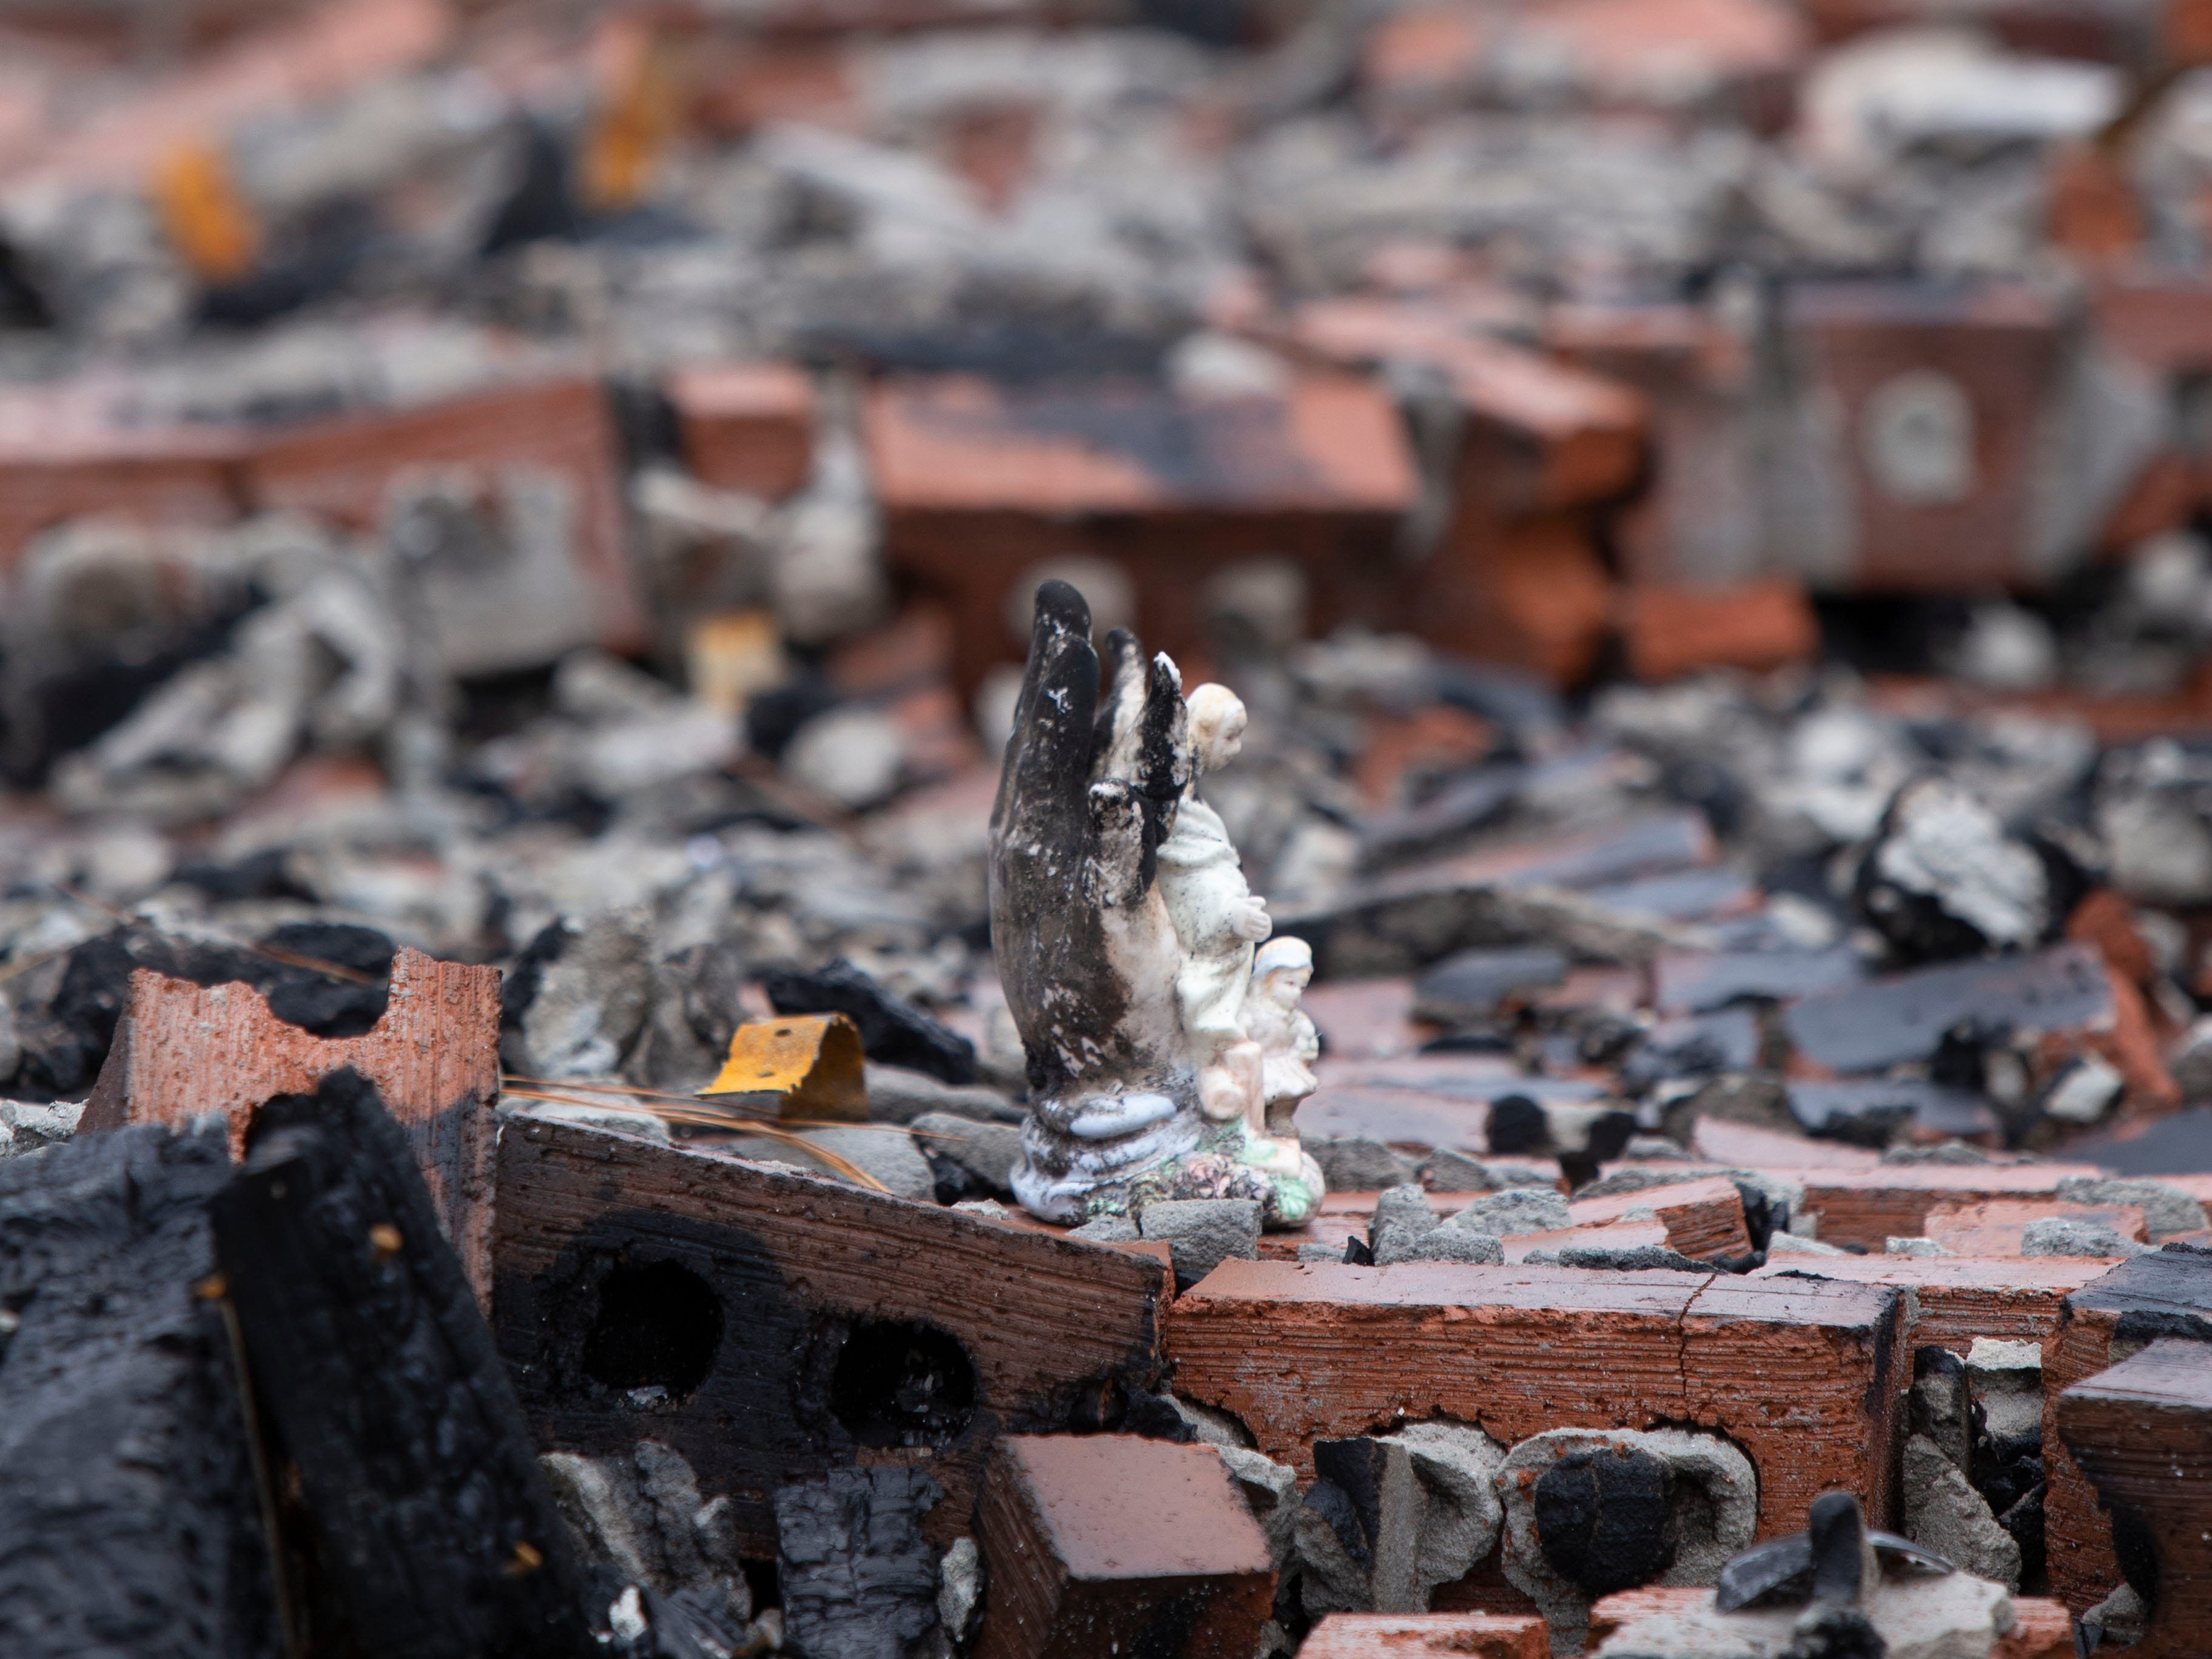 An angel figurine was one of the possessions left in the rubble of a house fire that destroyed the Haas home in Kiln, Mississippi, on Nov. 26, 2018. The angel's wings are burned with ash, but the children in front are unscathed.